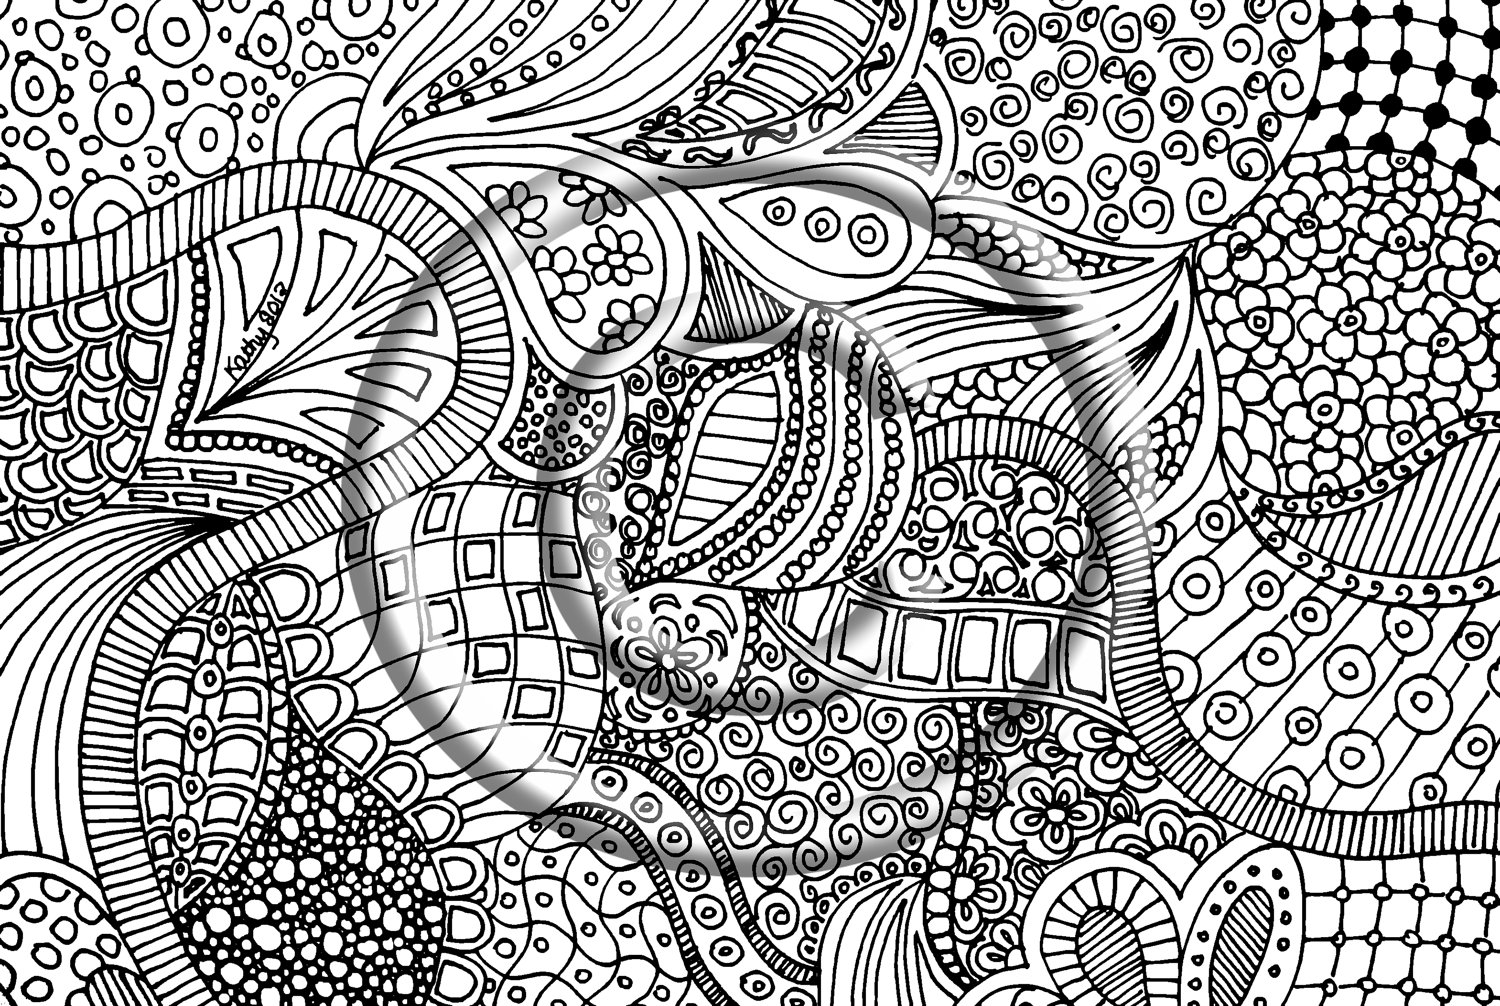 zentangle coloring pages free printable lion head zentangle coloring page free printable printable pages free zentangle coloring